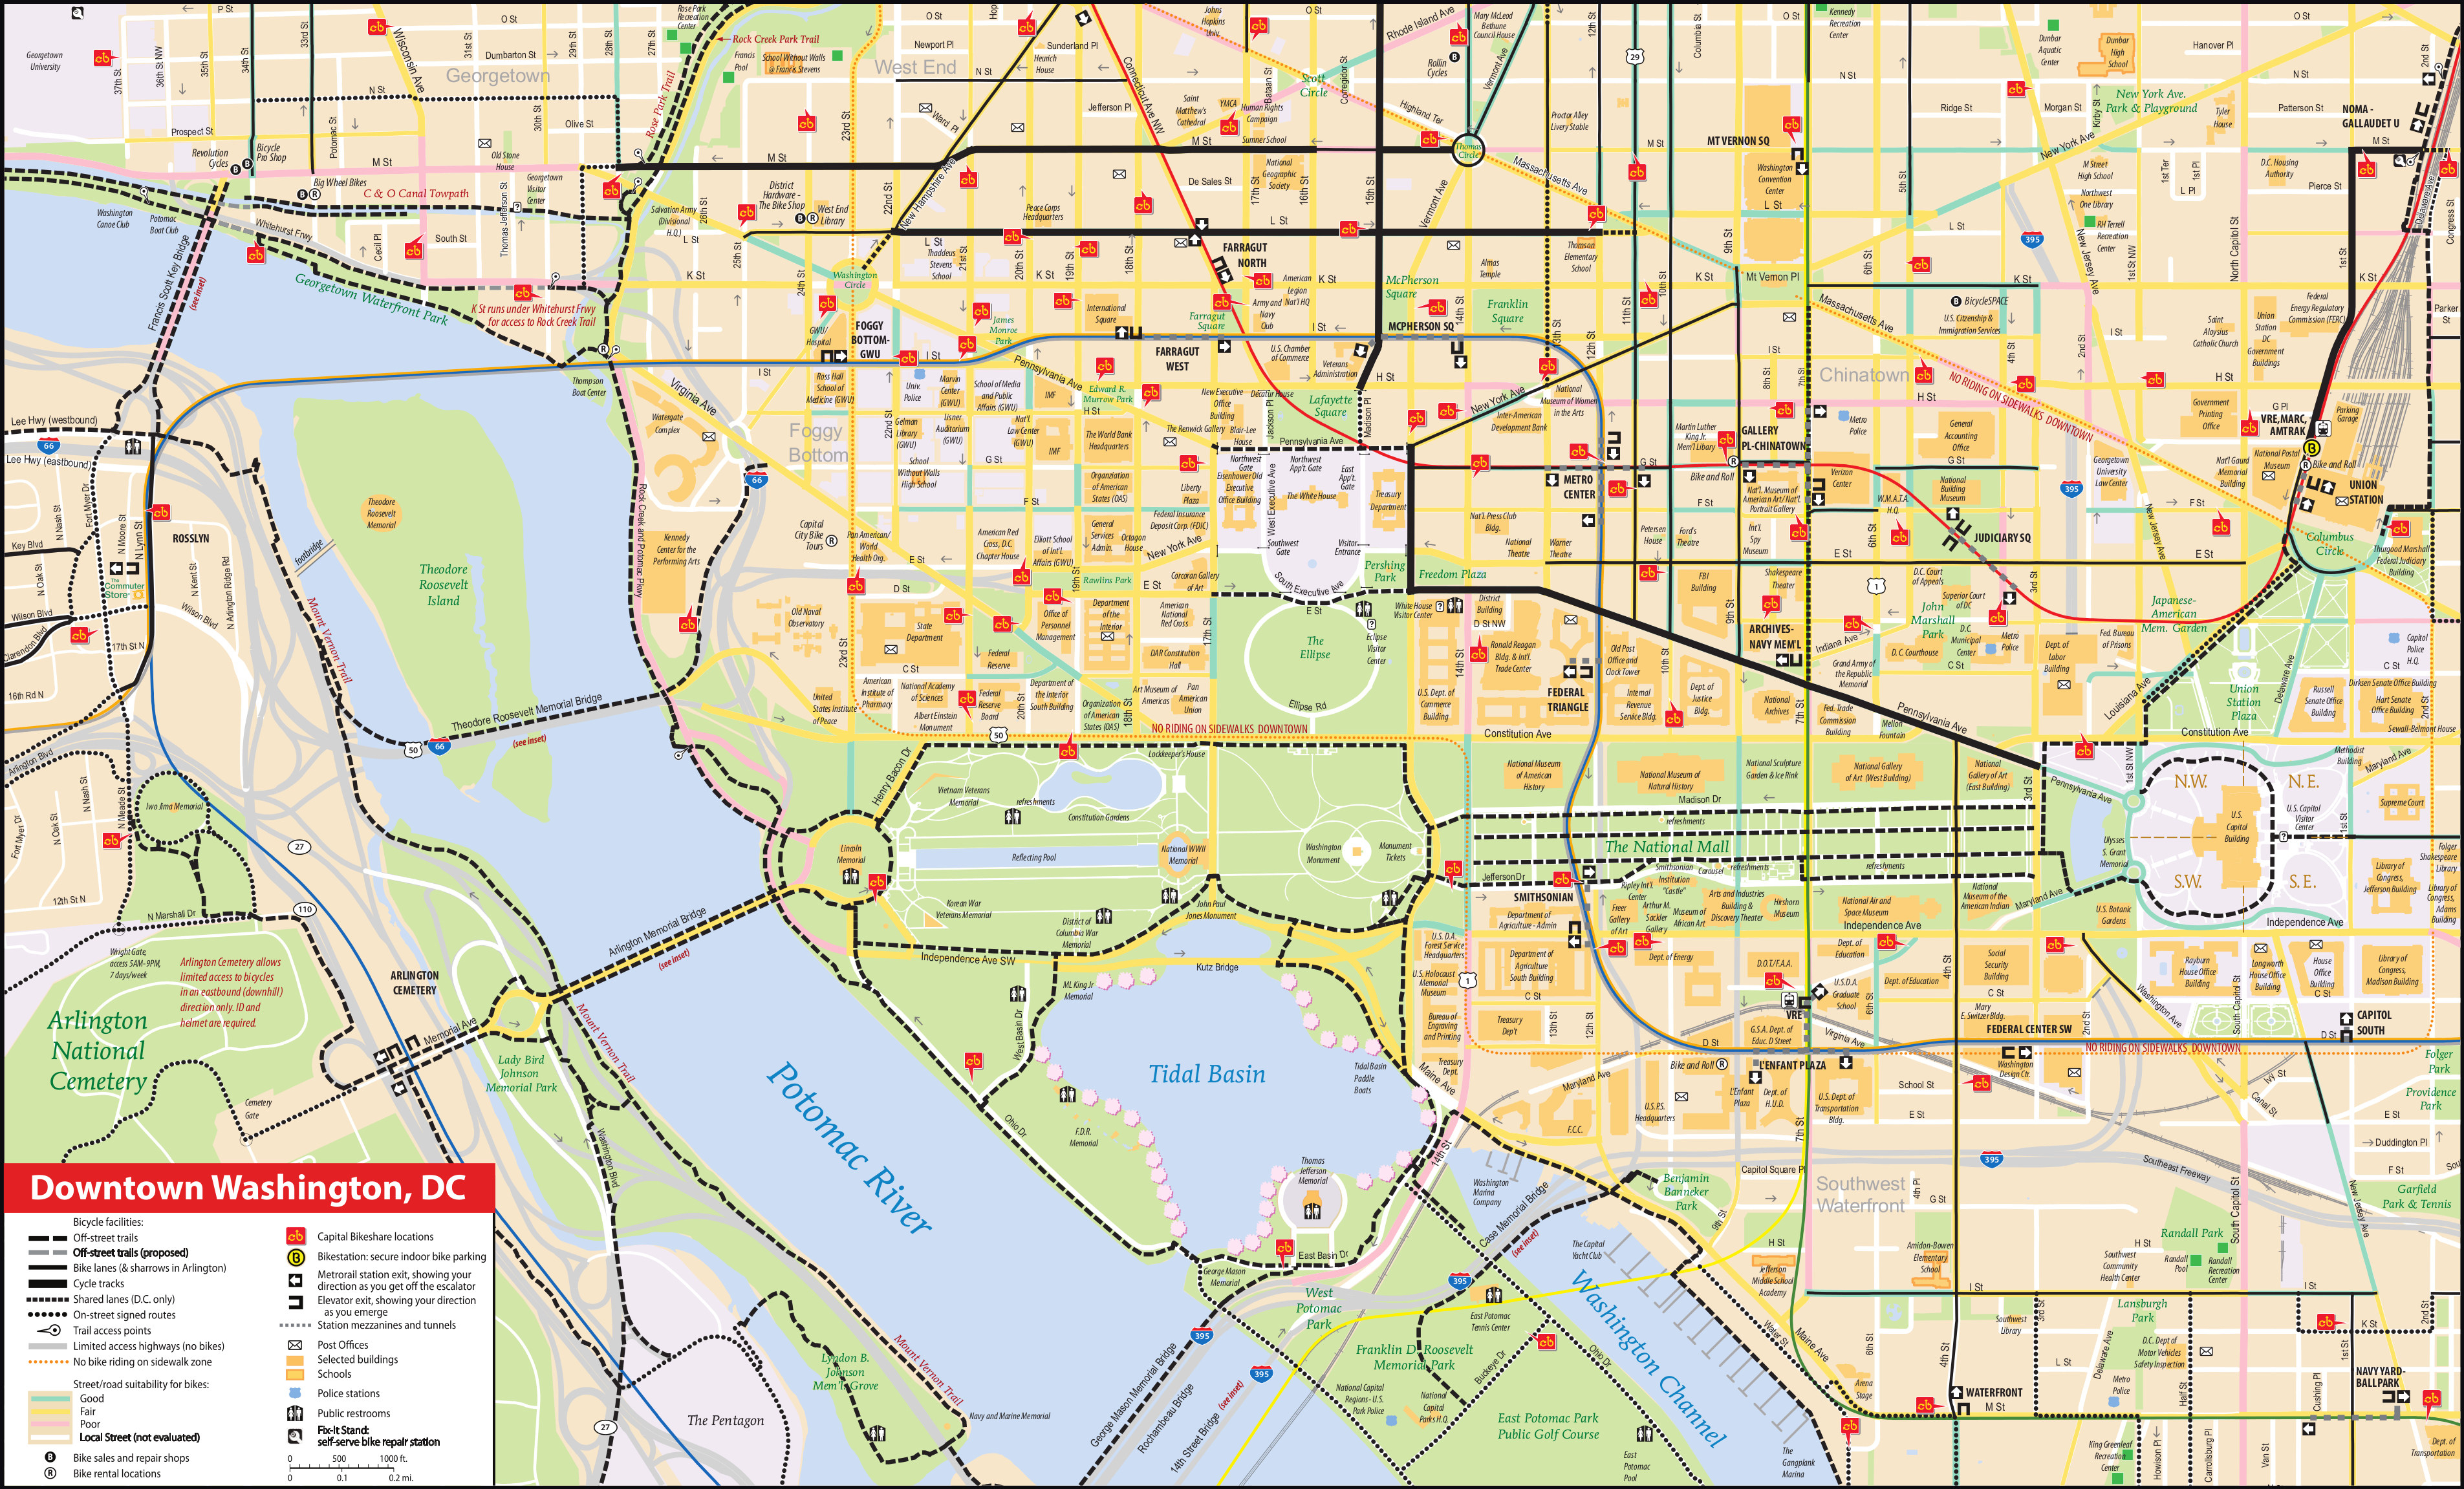 National Mall Maps   Npmaps - Just Free Maps, Period. - National Mall Map Printable